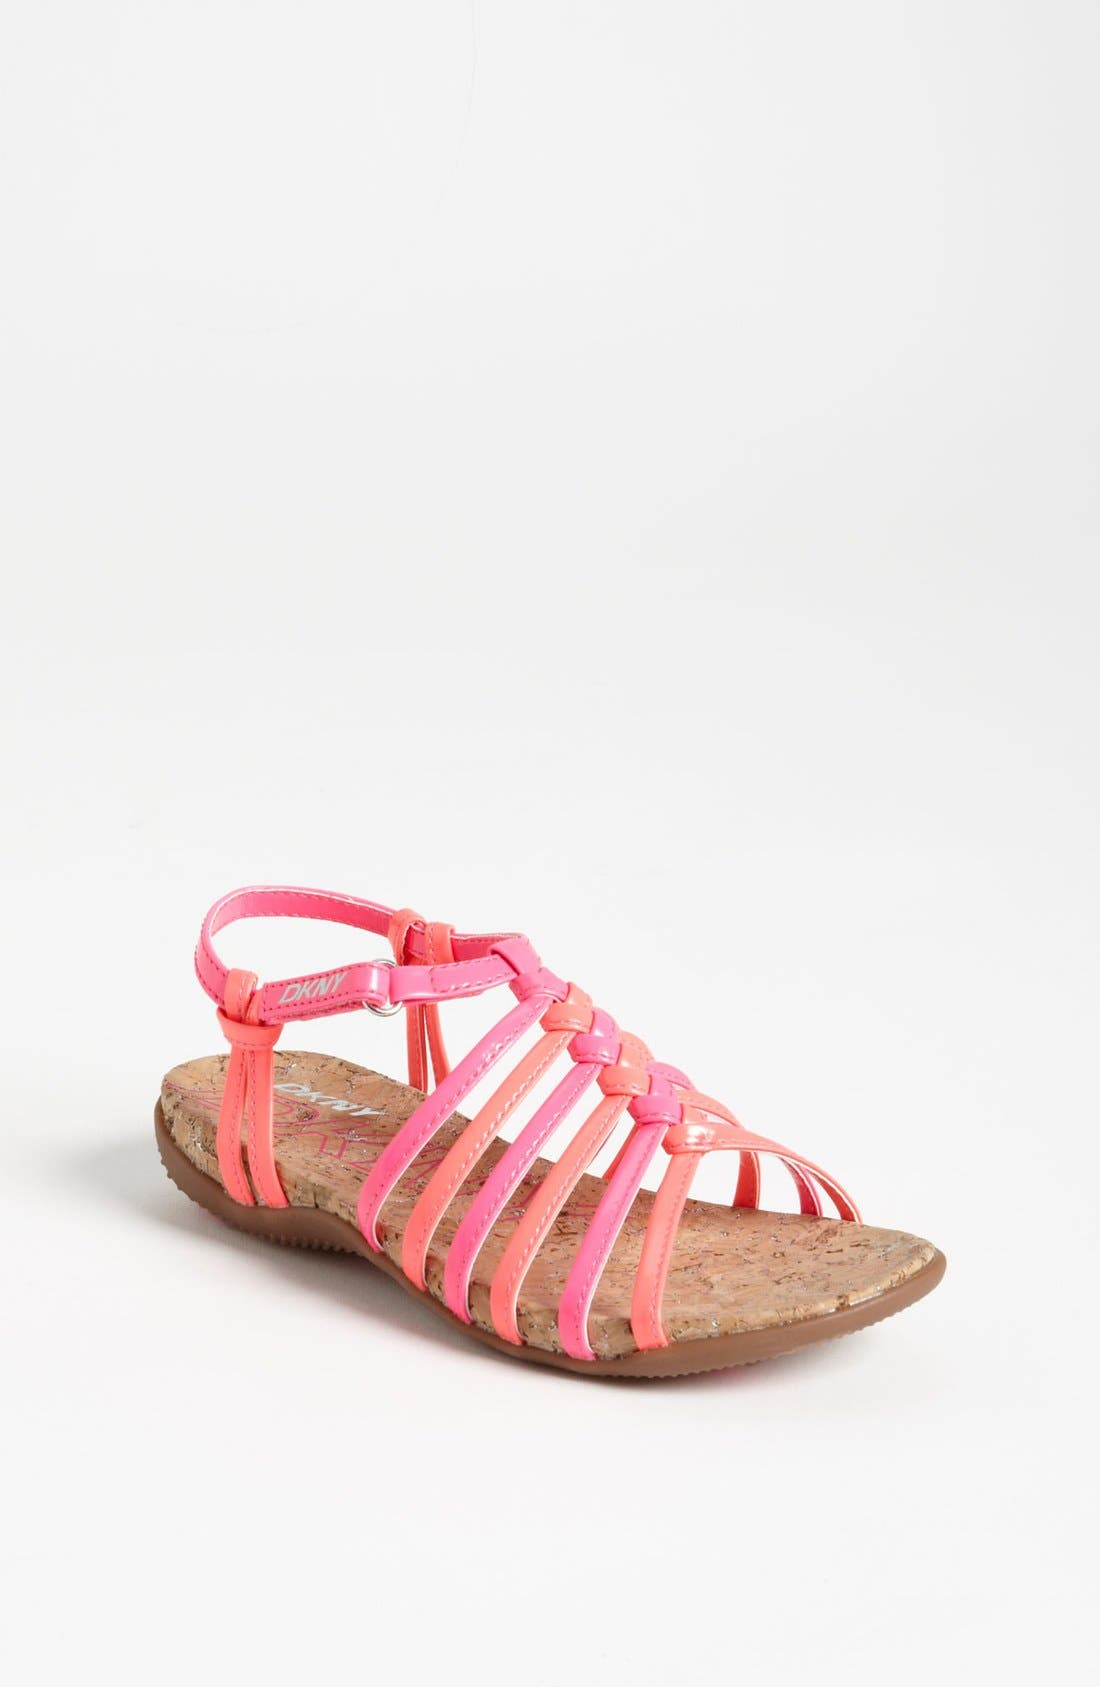 Alternate Image 1 Selected - DKNY 'Venetia' Sandal (Toddler, Little Kid & Big Kid)